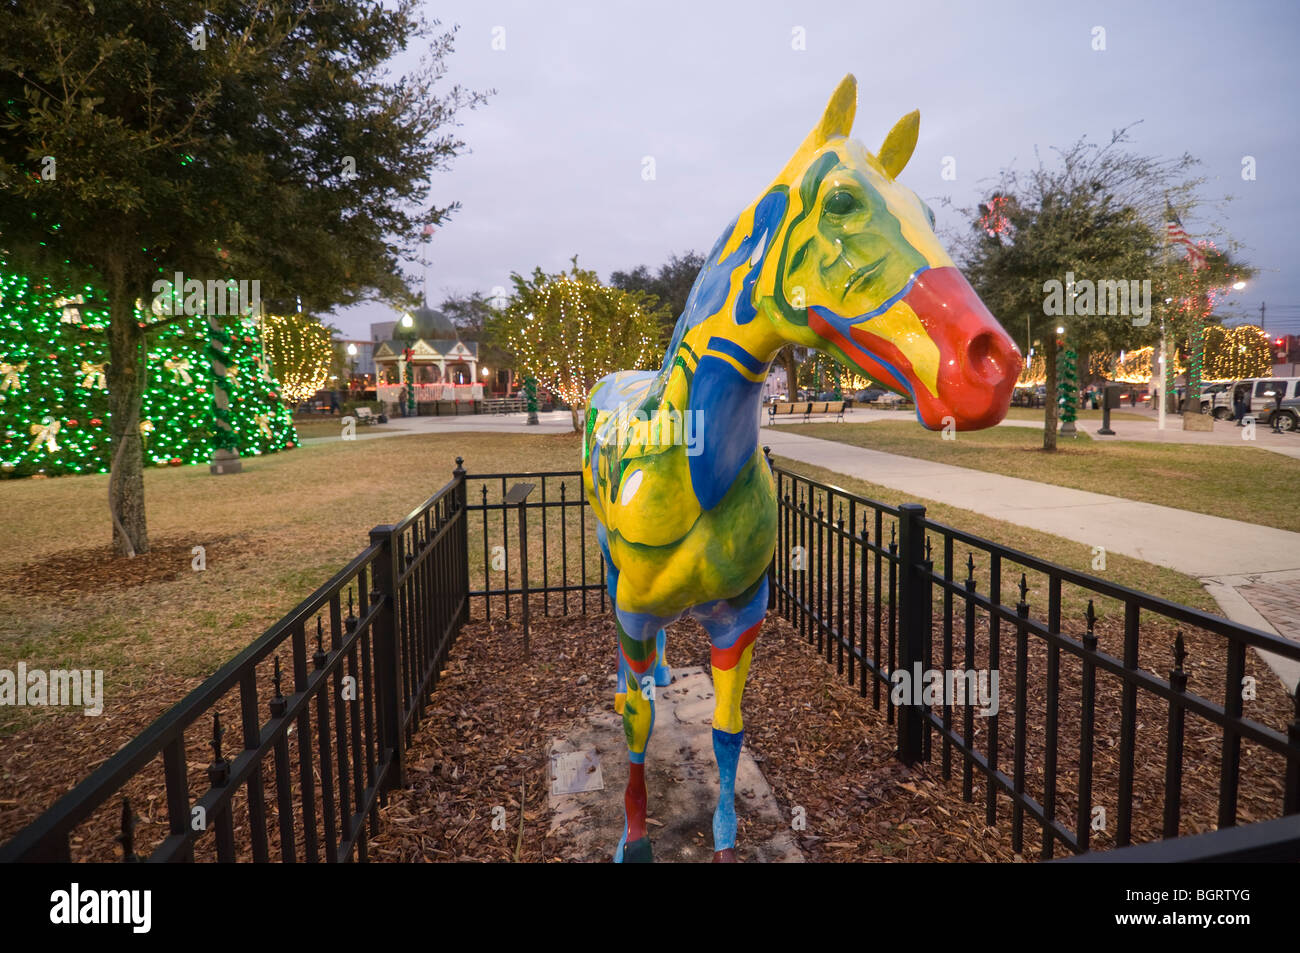 Painted horse sculpture on display downtown square Ocala Florida among Christmas lights decorations - Stock Image